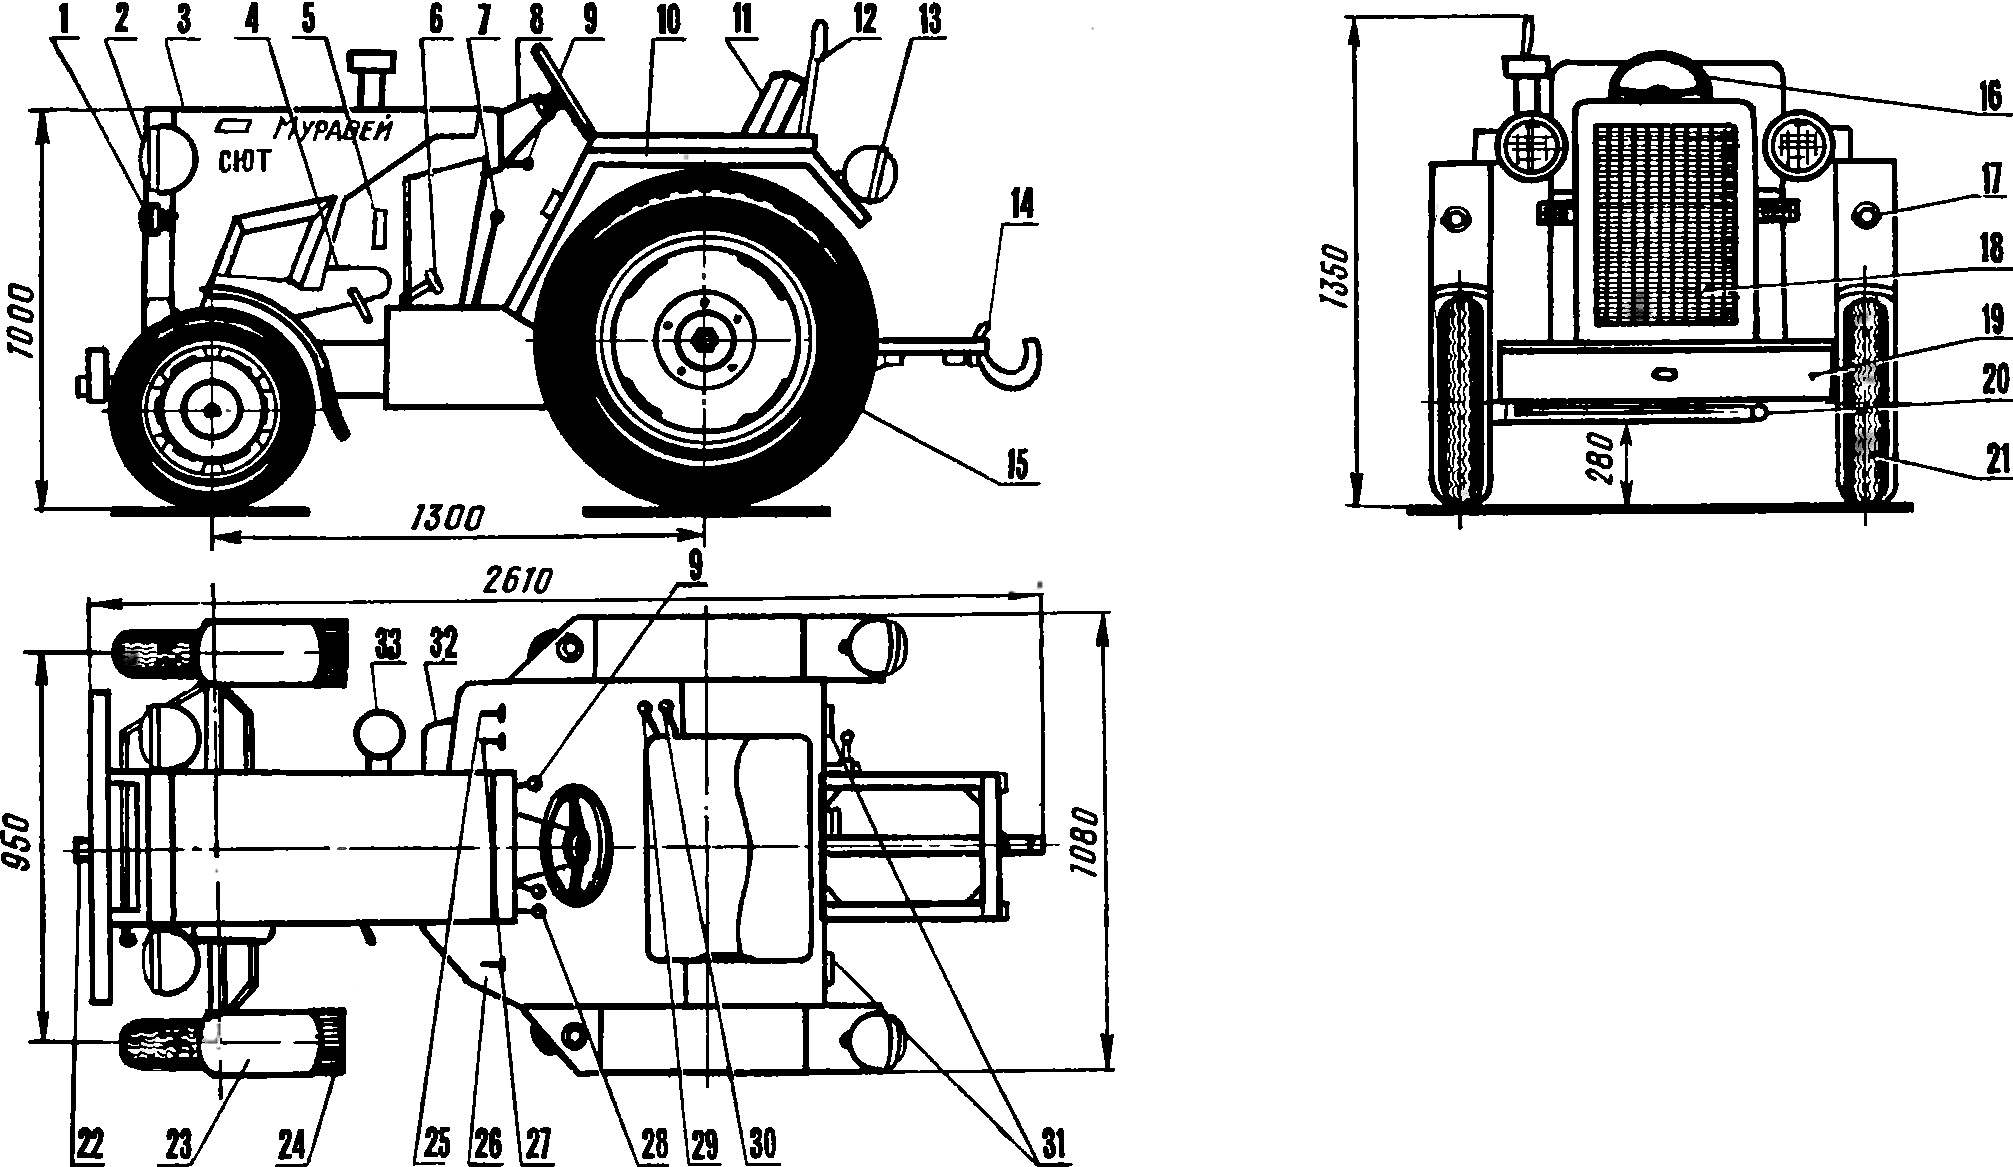 Fig. 1. The layout of the mini-tractor